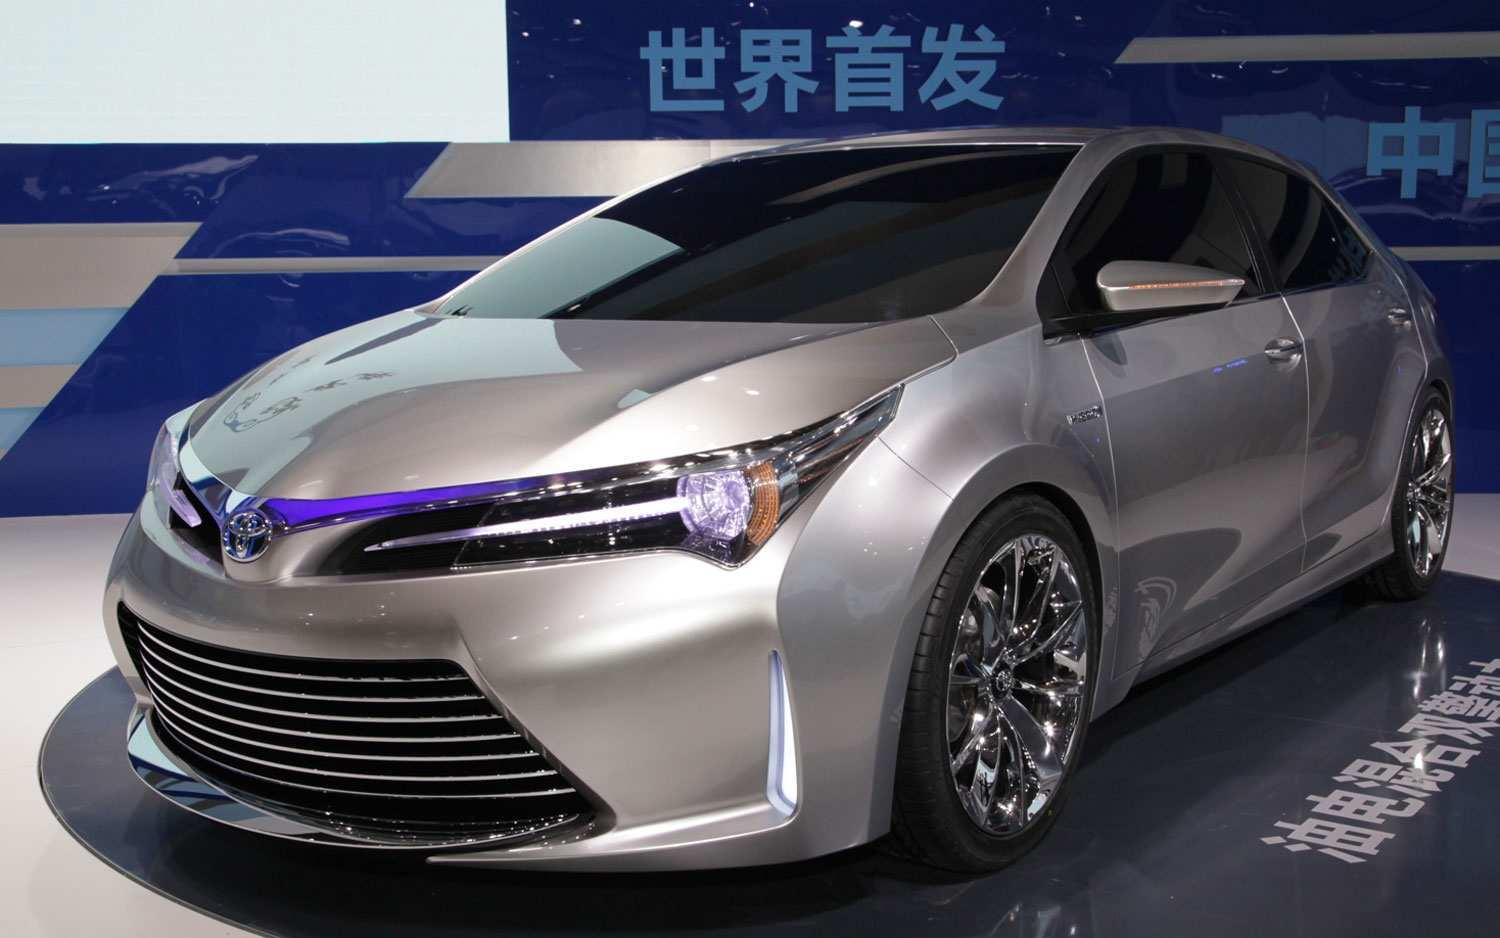 66 The Best Toyota Yaris 2020 Concept Review